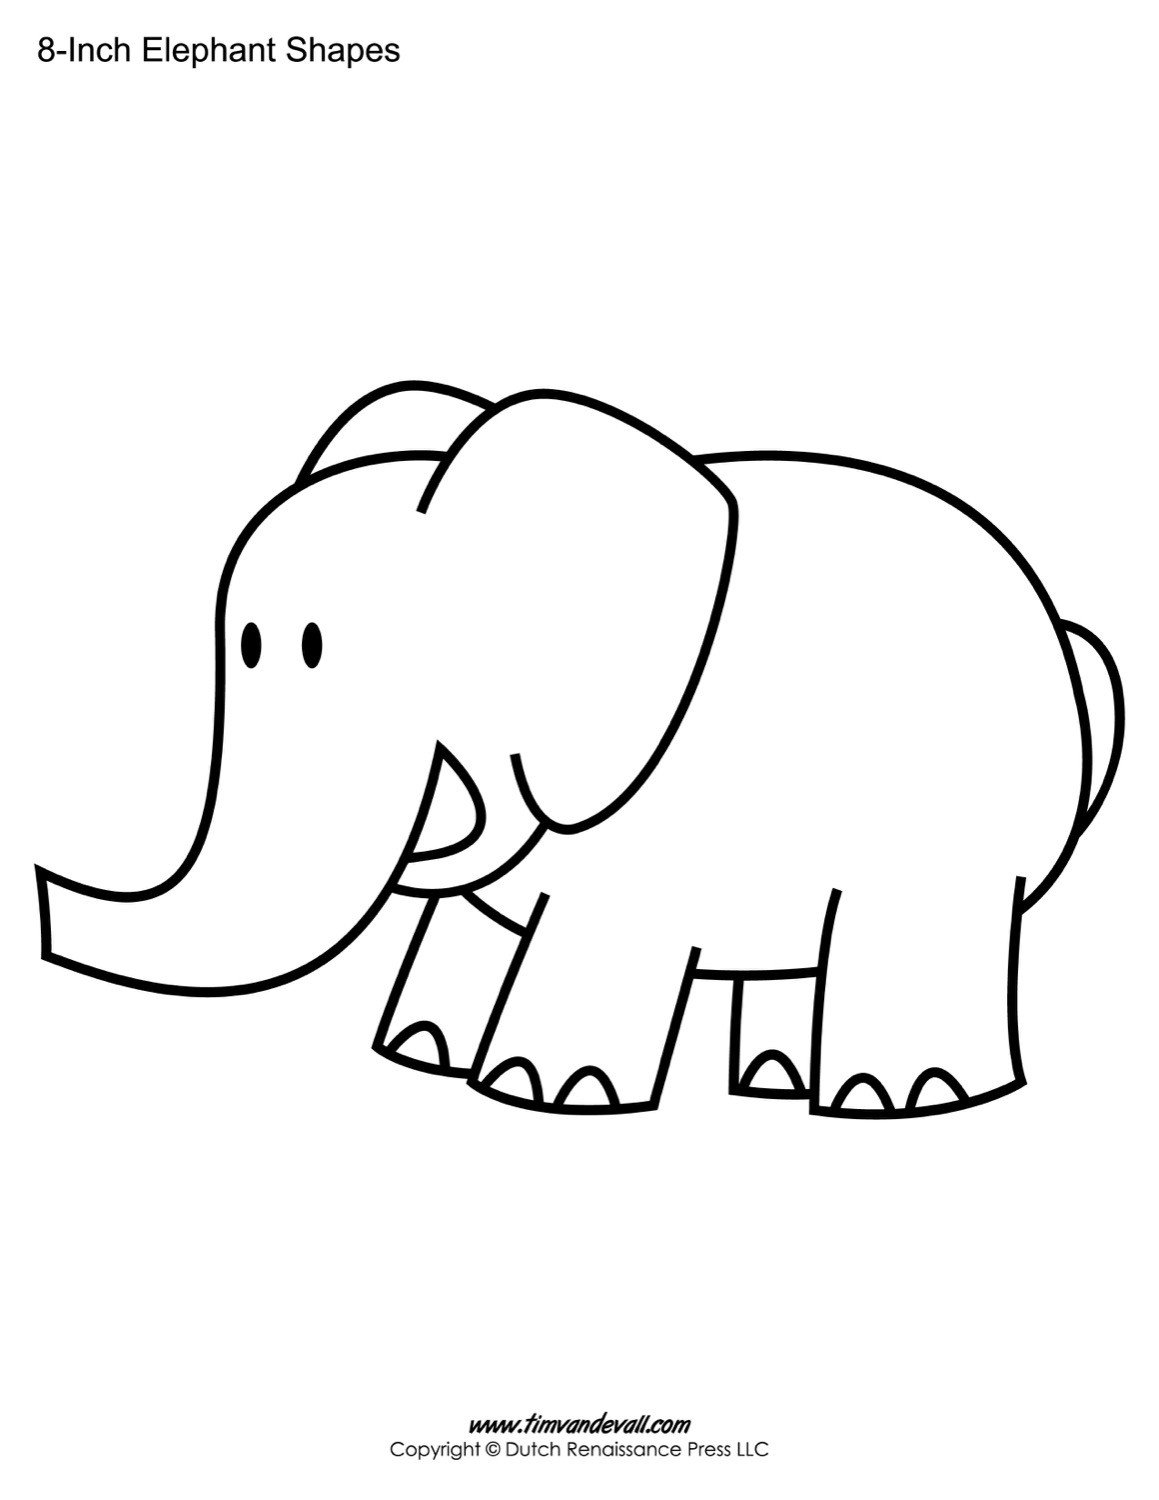 Elephant Cut Out Template Tim Van De Vall Ics & Printables for Kids